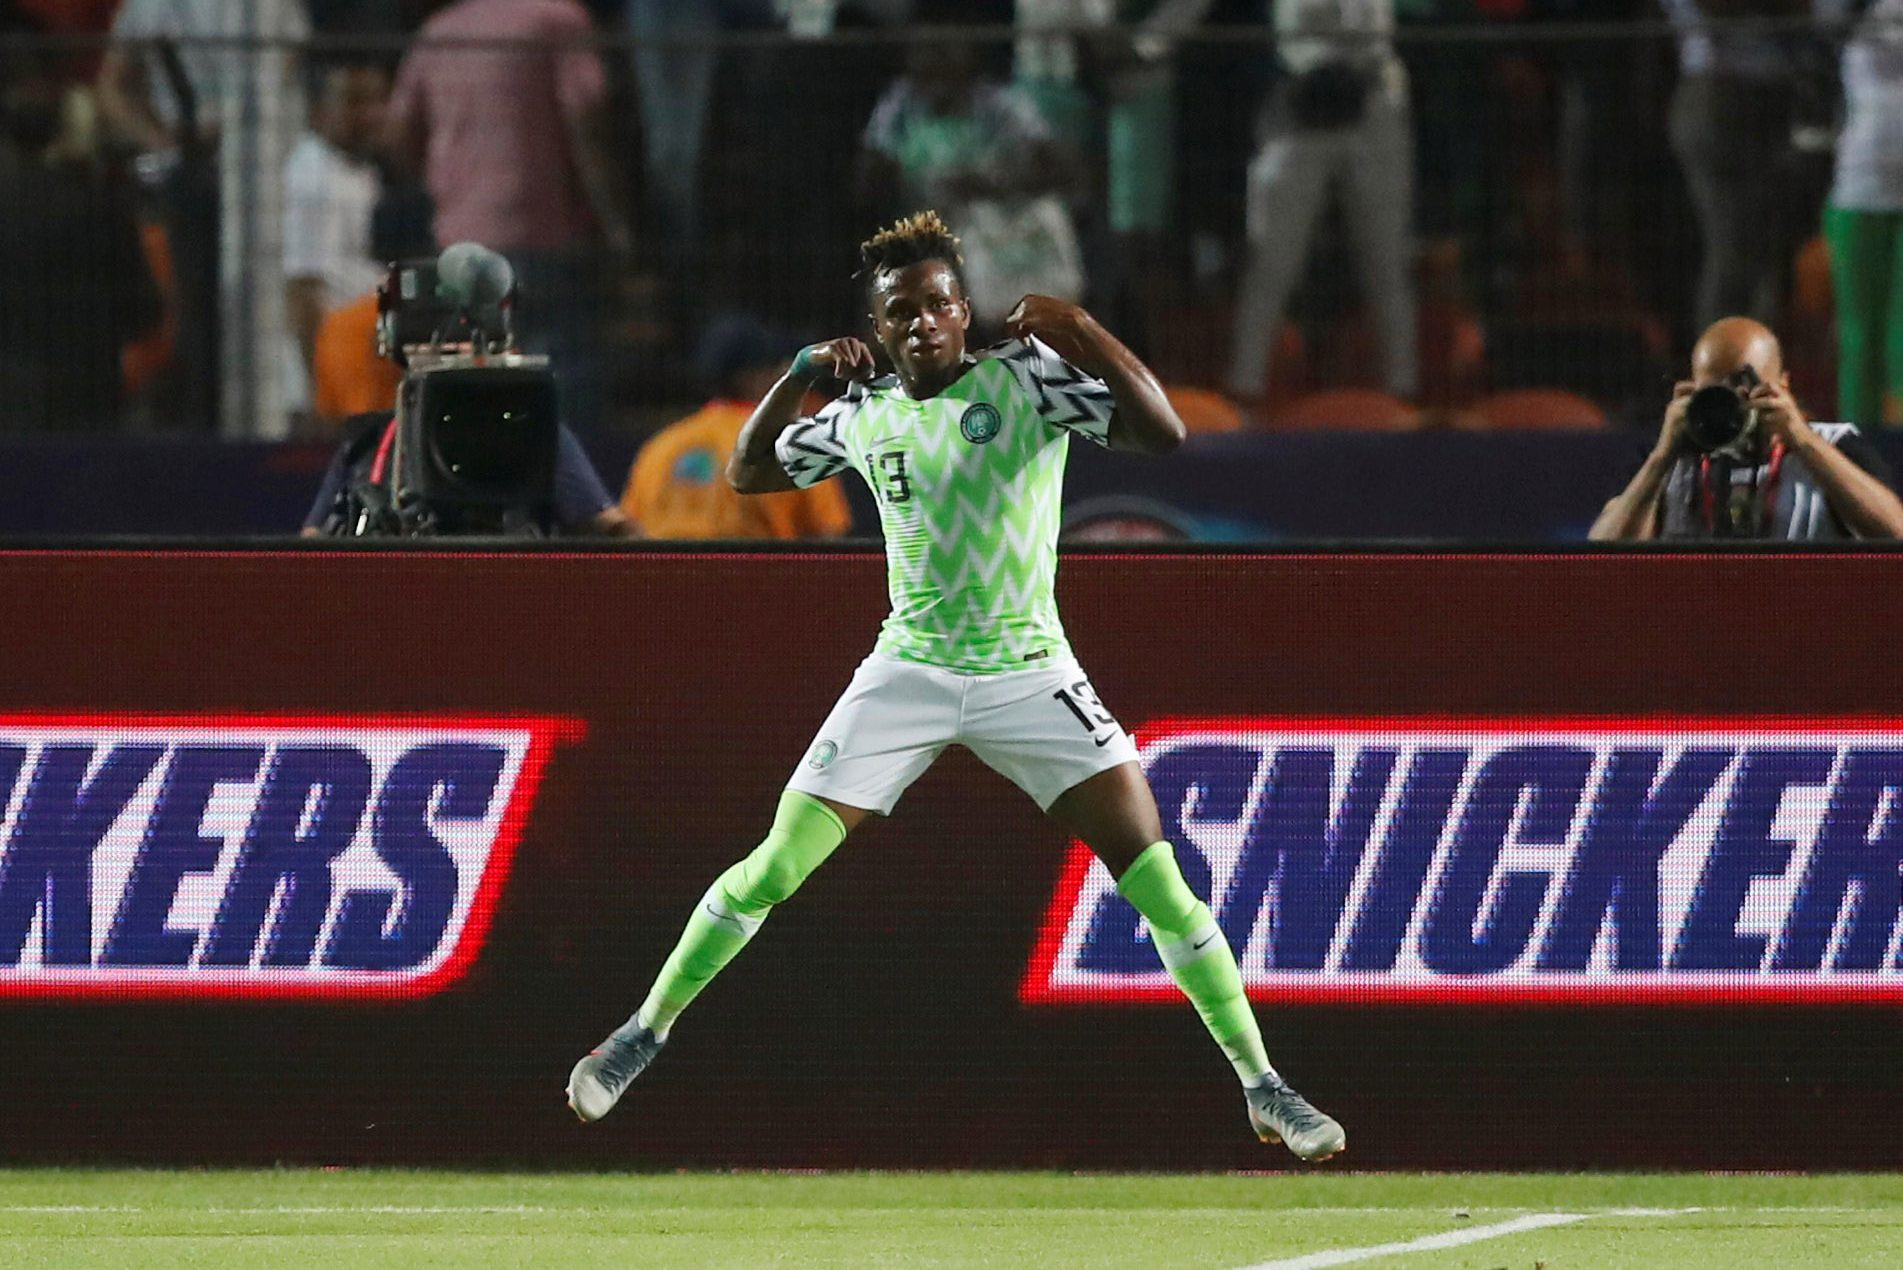 10 July 2019: Nigeria's Samuel Chukwueze celebrates scoring the first goal for the Super Eagles in their Africa Cup of Nations quarterfinal against South Africa at Cairo International Stadium in Egypt. (Photograph by Reuters/Amr Abdallah Dalsh)